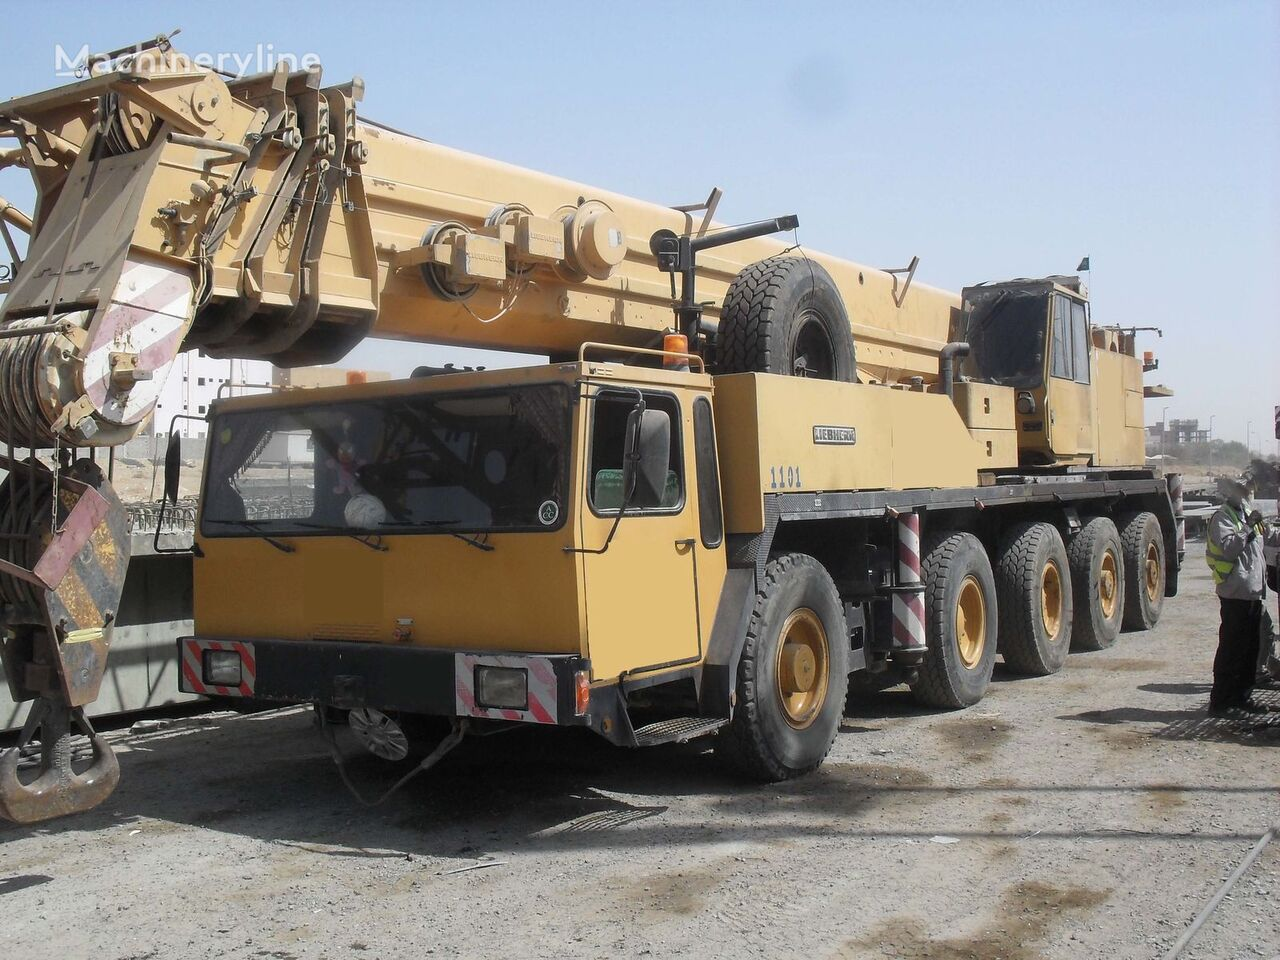 Mobile Crane Kje : Liebherr ltm mobile cranes for sale all terrain